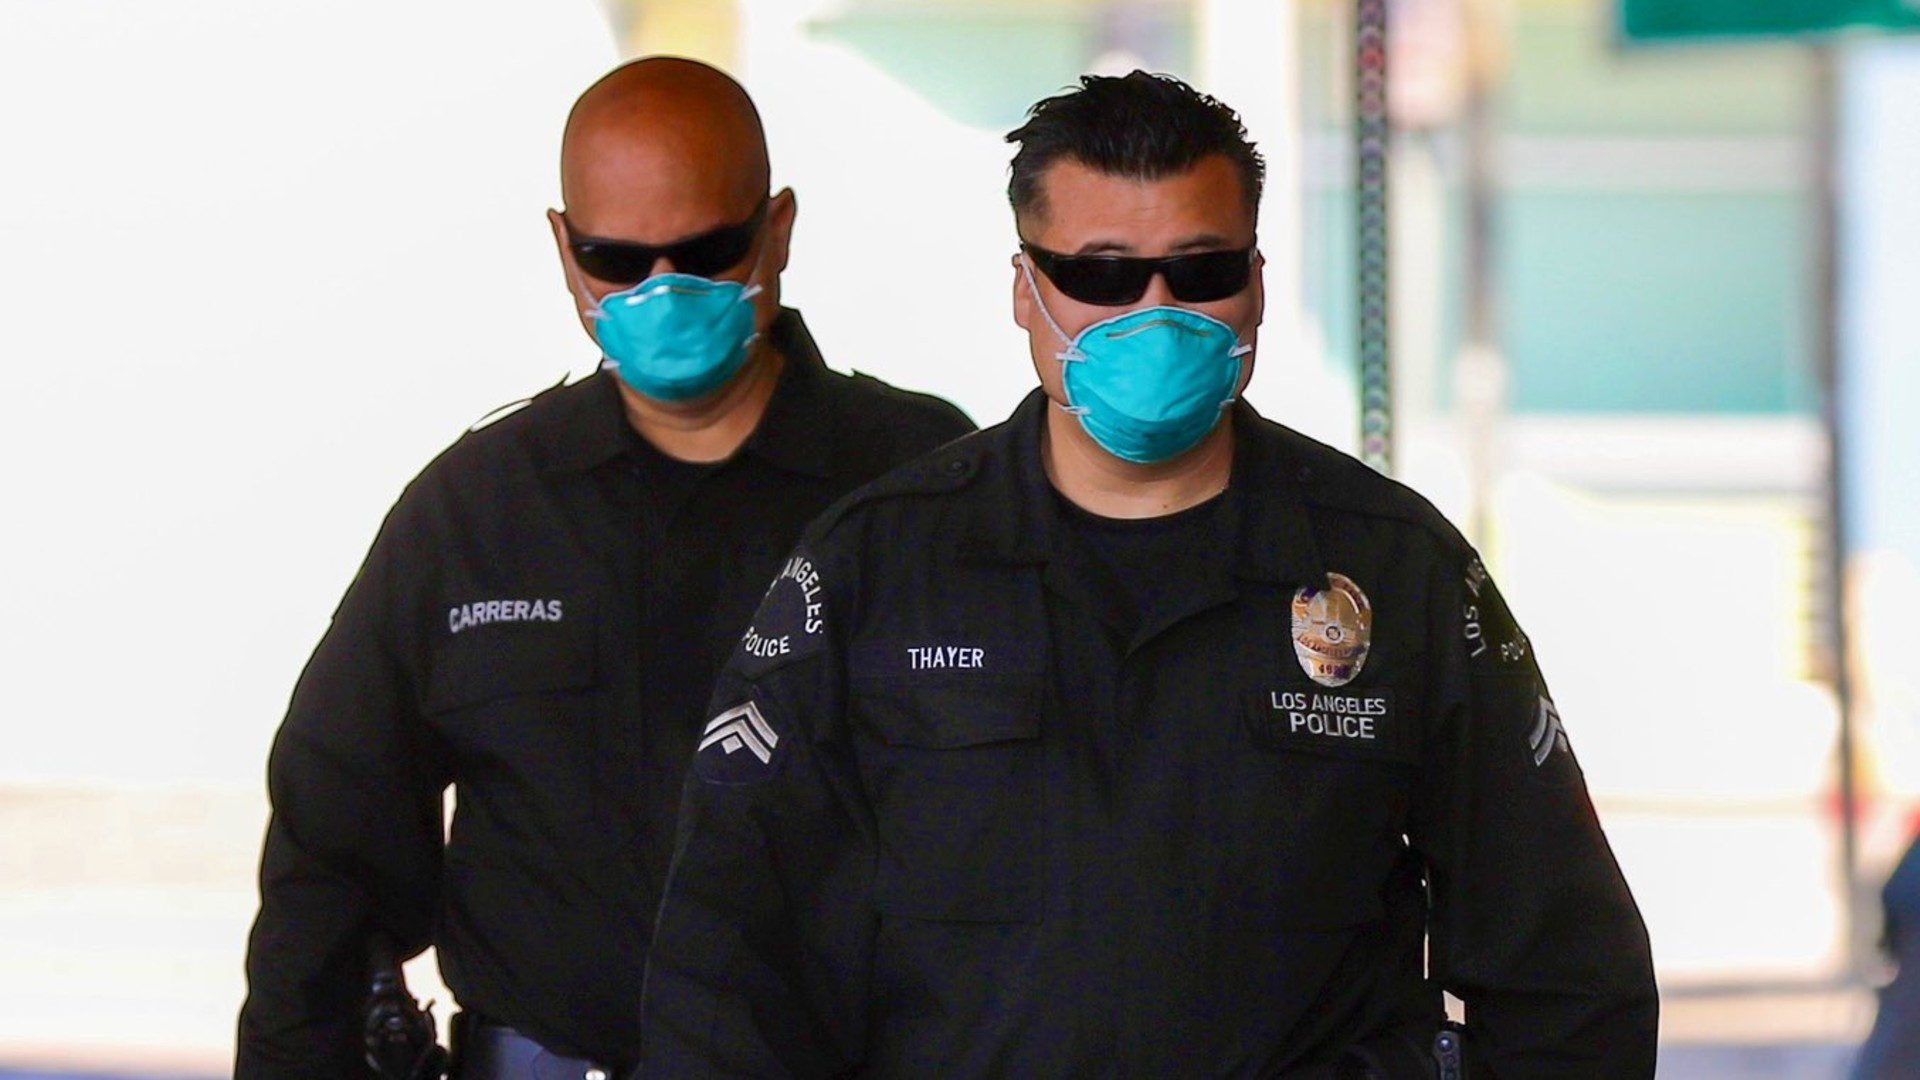 Los Angeles Police Department officers are pictured wearing face masks on April 2, 2020. (LAPD)